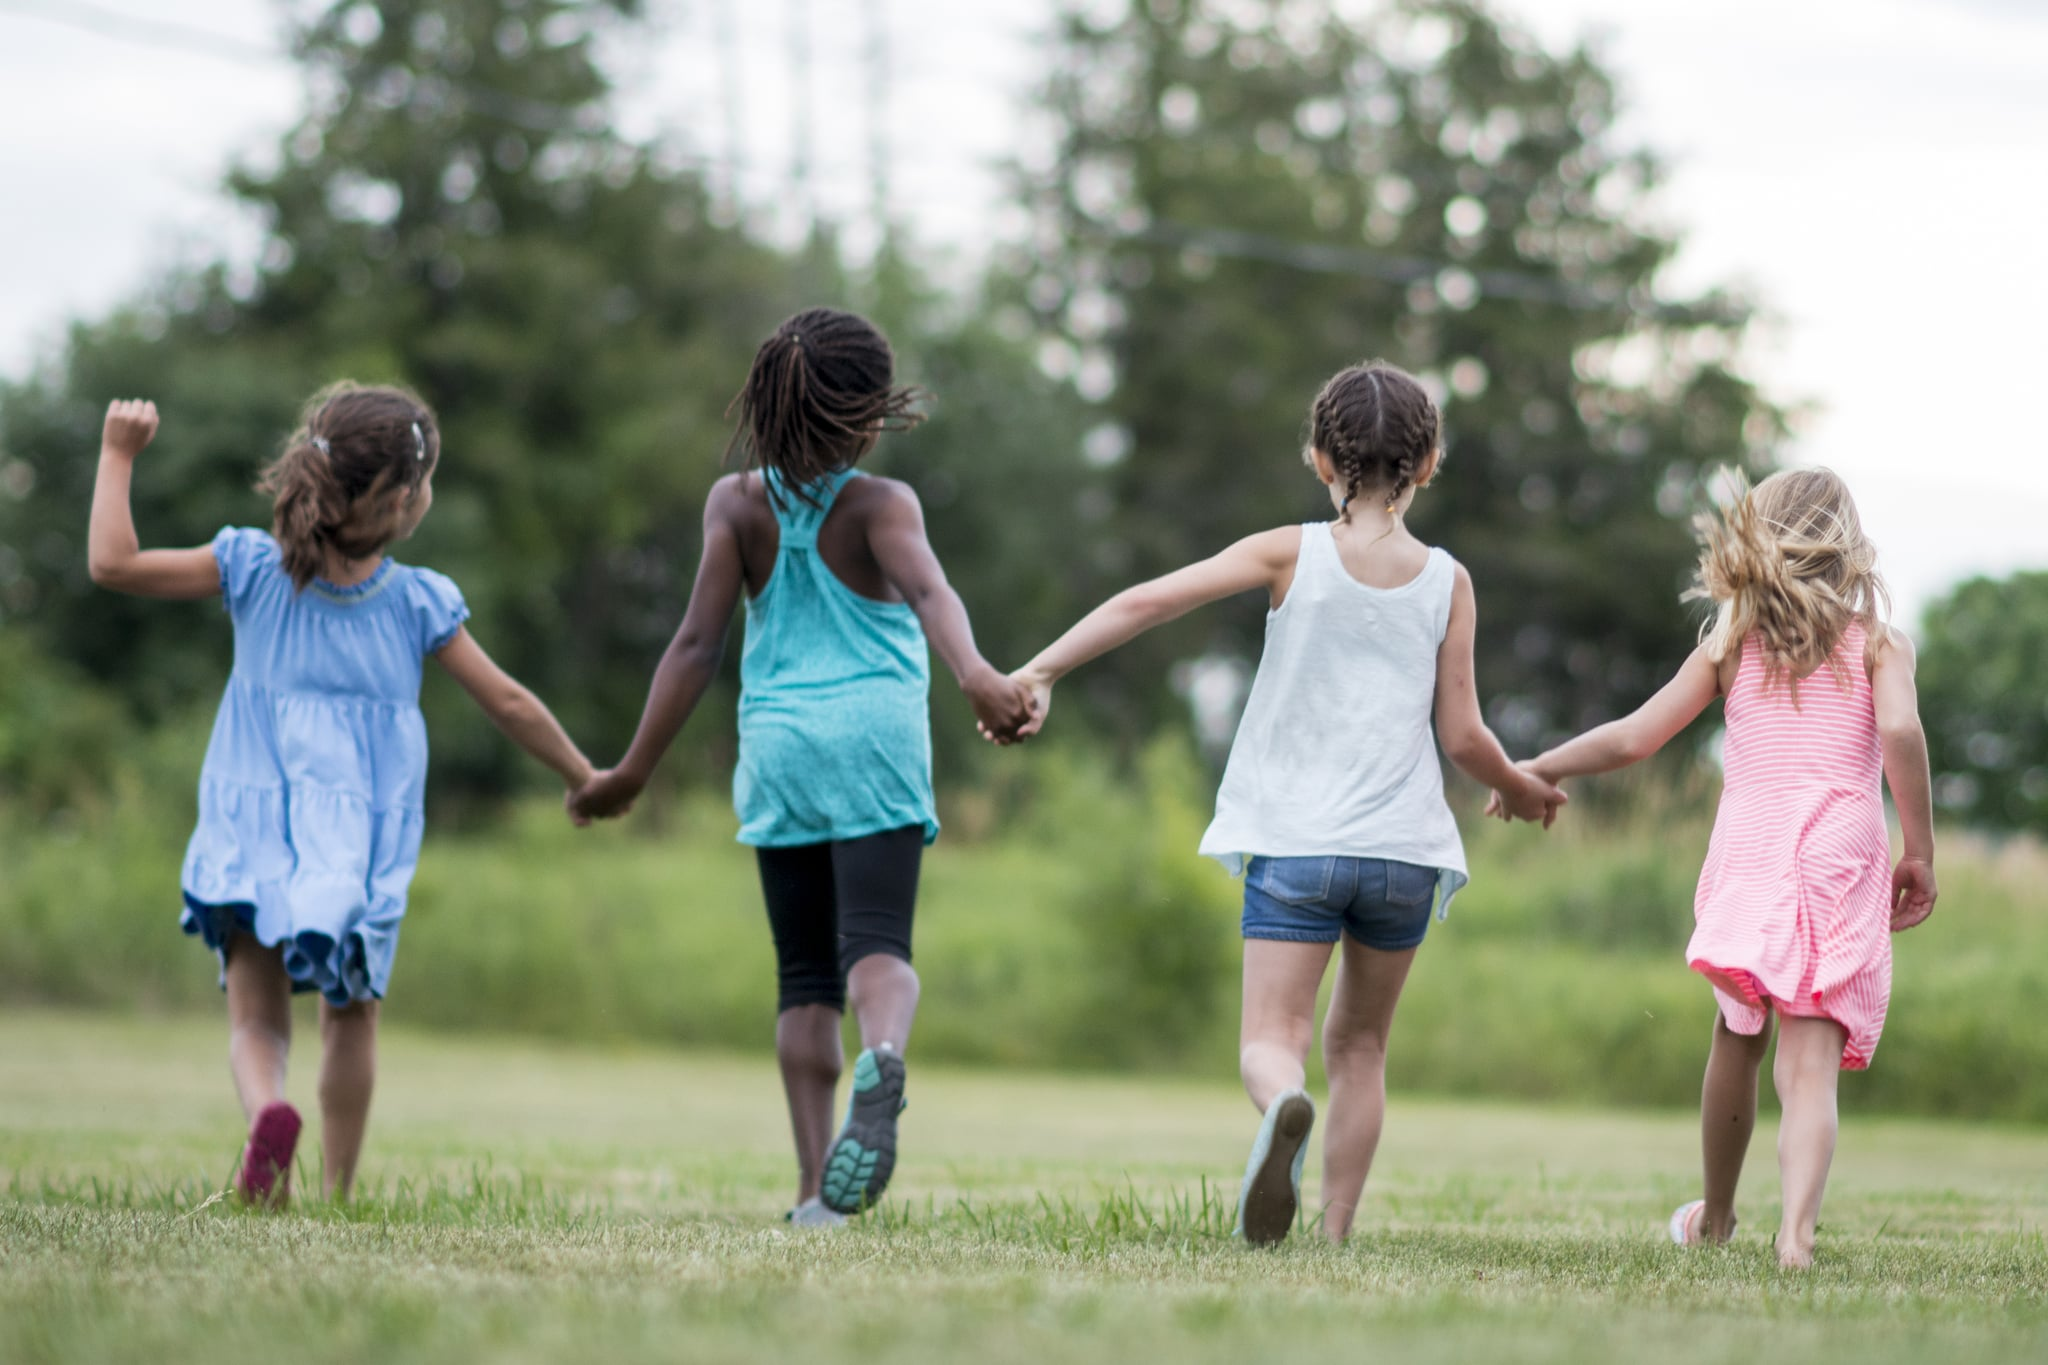 A multi-ethnic group of elementary age children are playing together outside at recess. A group of girls are holding hands and running together in a row.